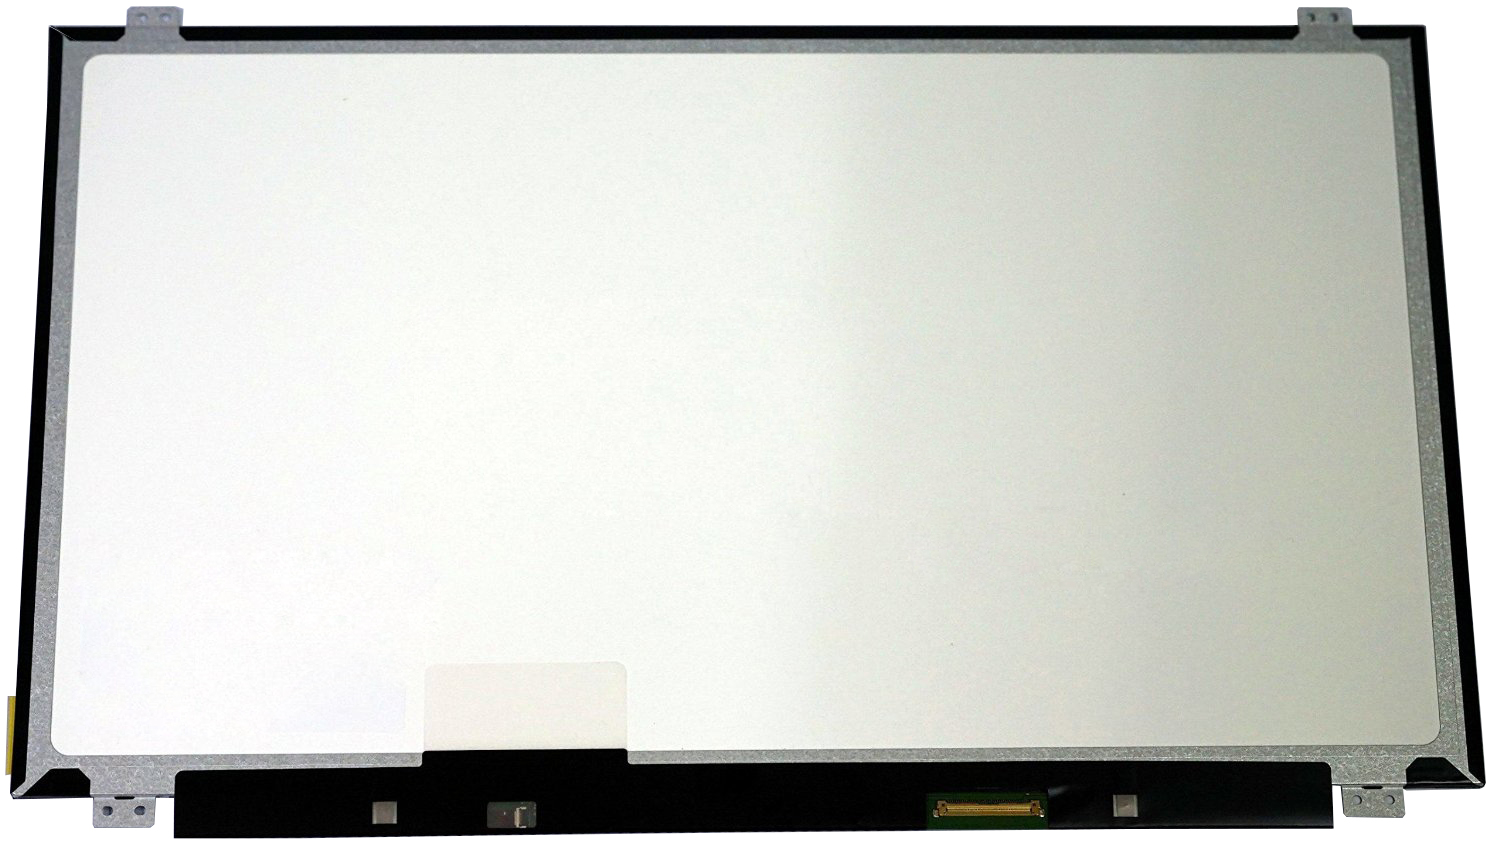 QuYing Laptop LCD Screen for acer EXTENSA 2510 2510G 2508 2511 2520 SERIES (15.6 inch 1366x768 30Pin N) quying laptop lcd screen for acer extensa 5235 as5551 series 15 6 inch 1366x768 40pin tk